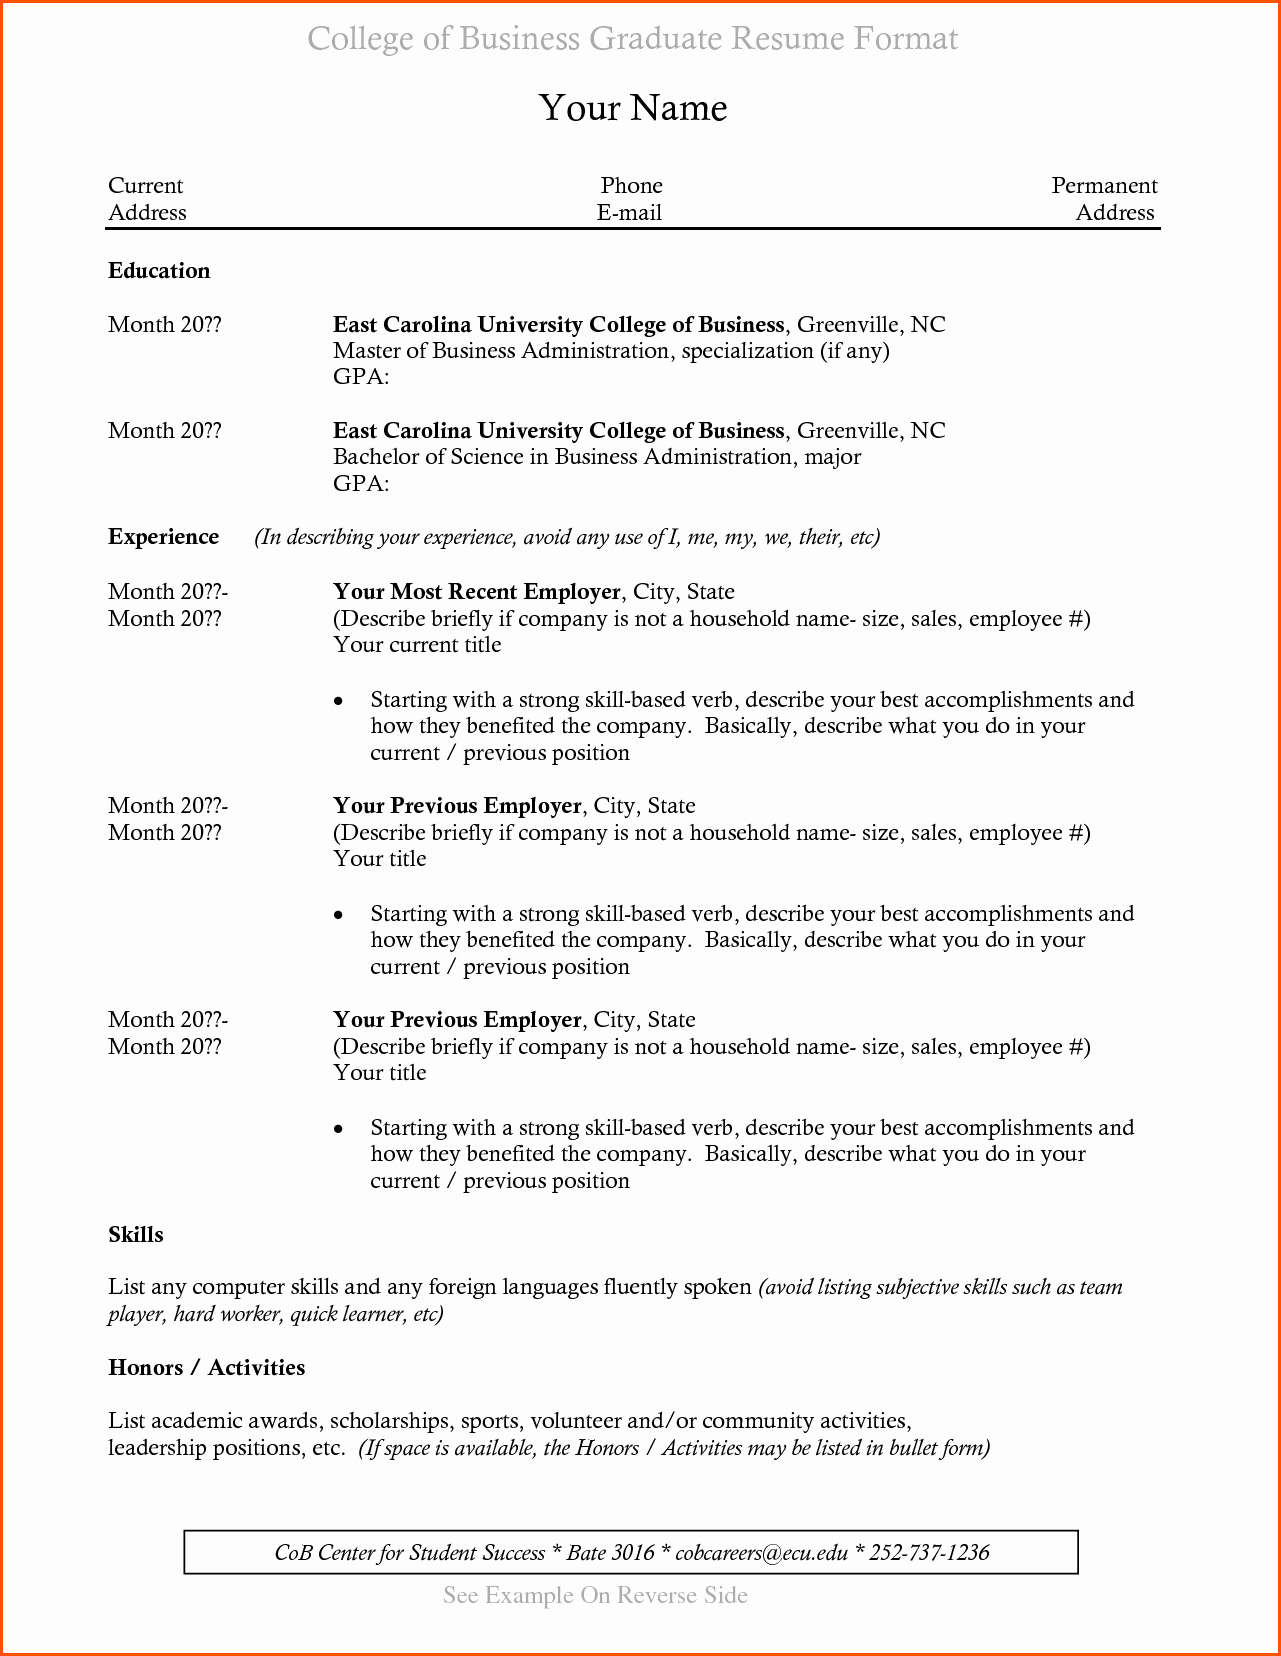 Resume for New College Graduate Elegant Resumes for College Graduates with No Experience